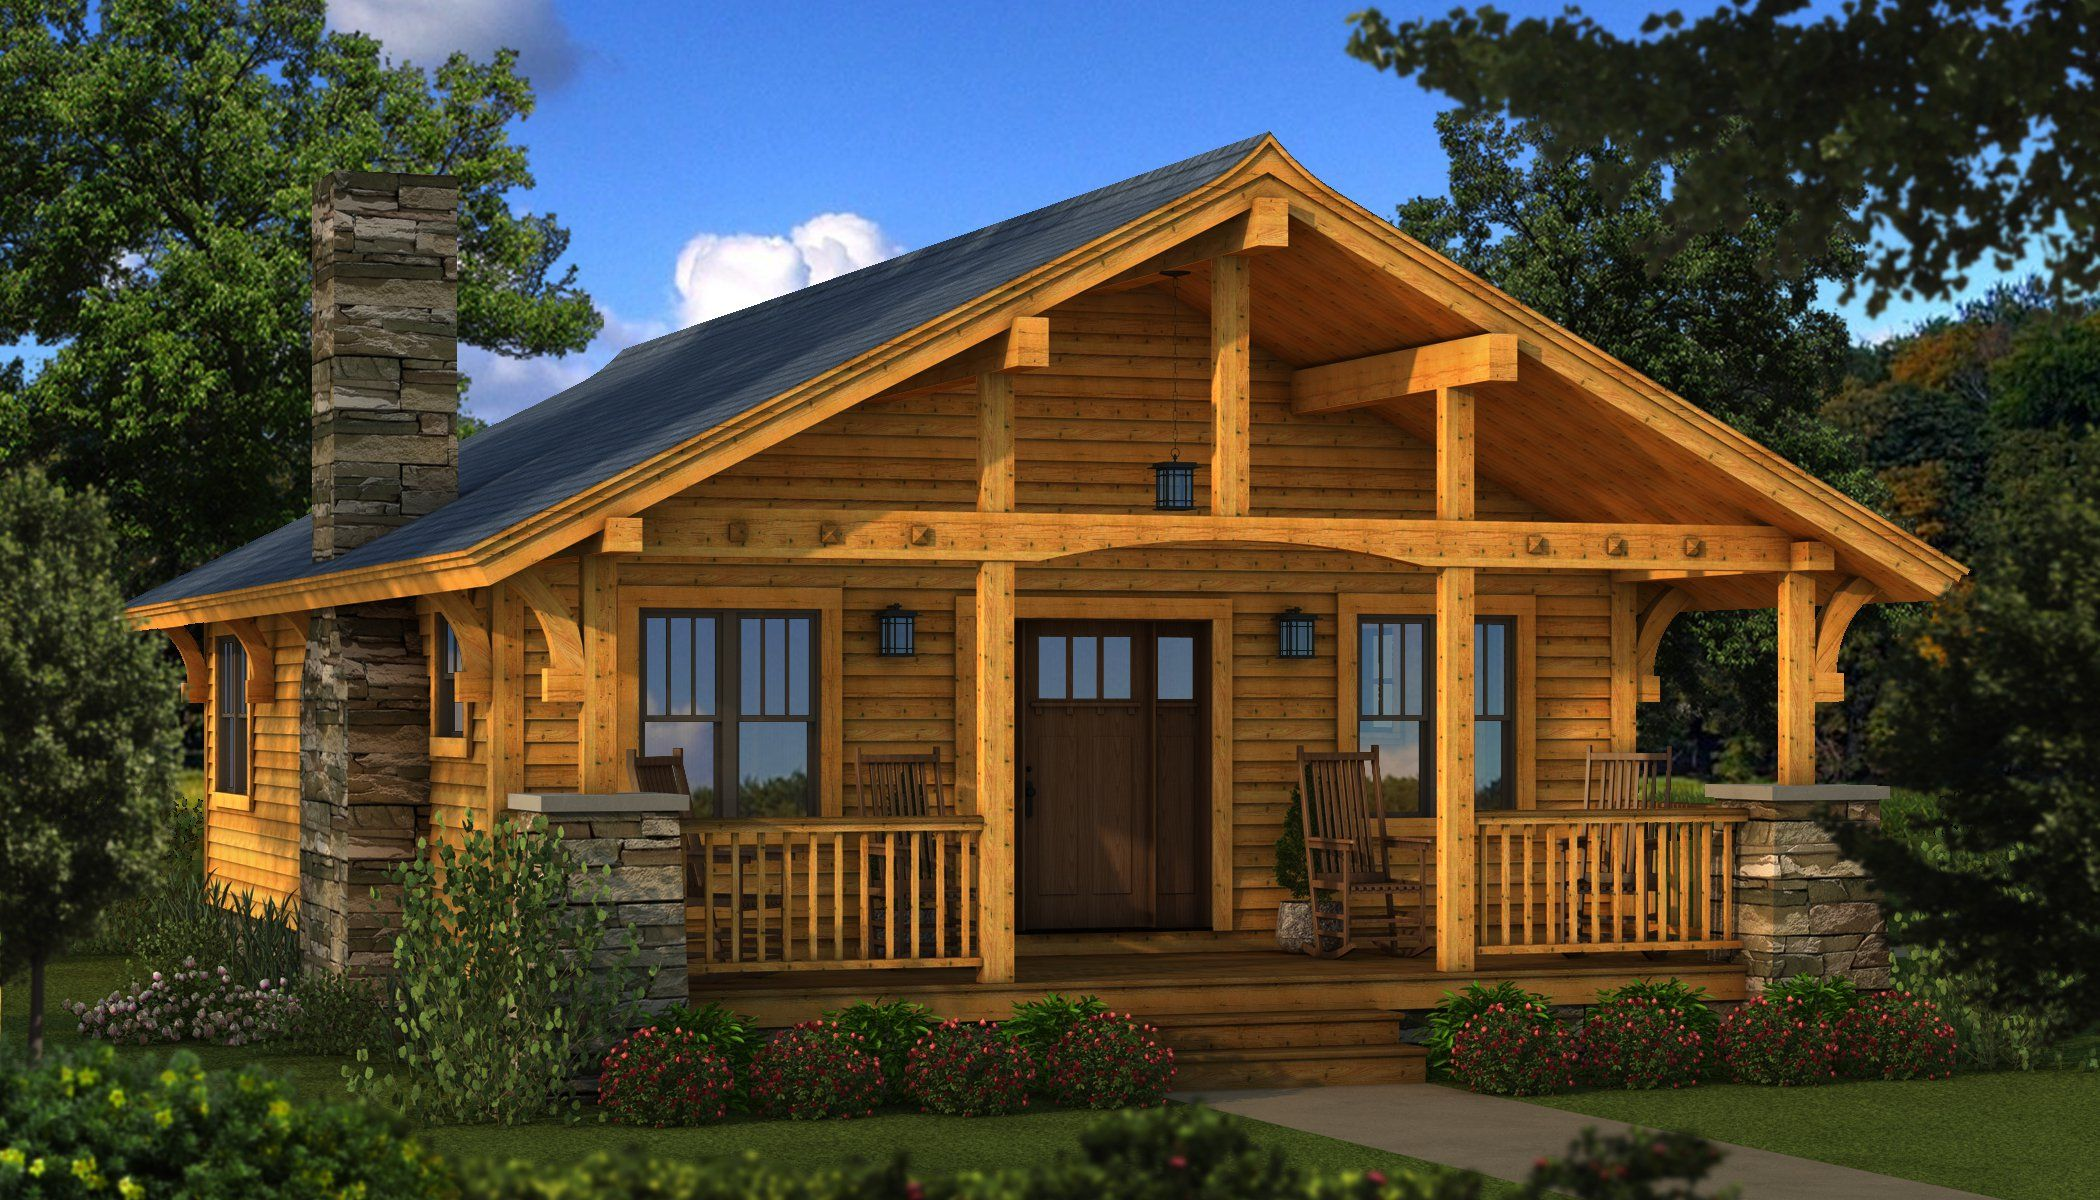 Bungalow 2 Log Cabin Kit Plans Information Southland Homes